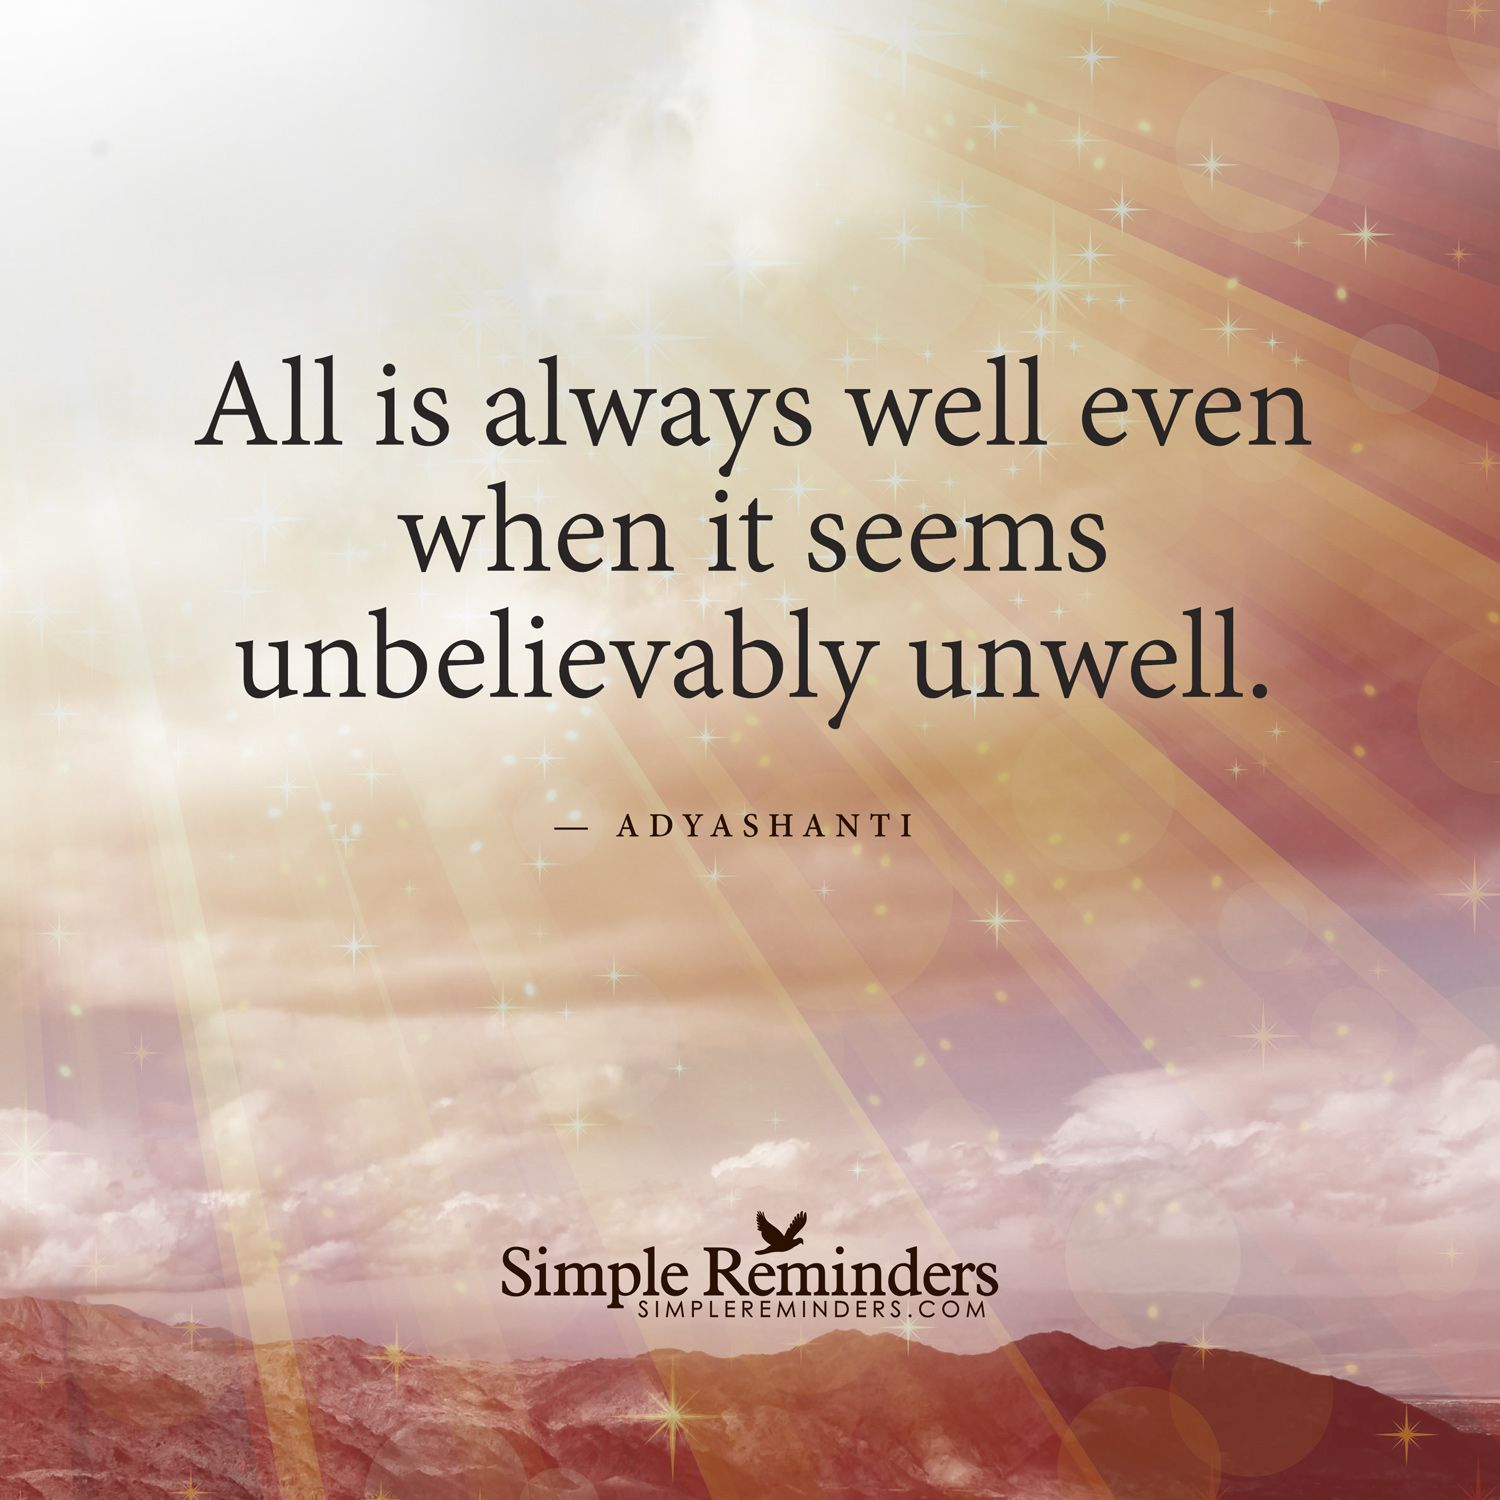 Adyashanti Quotes All Is Always Well Even When It Seems Unbelievably Unwell